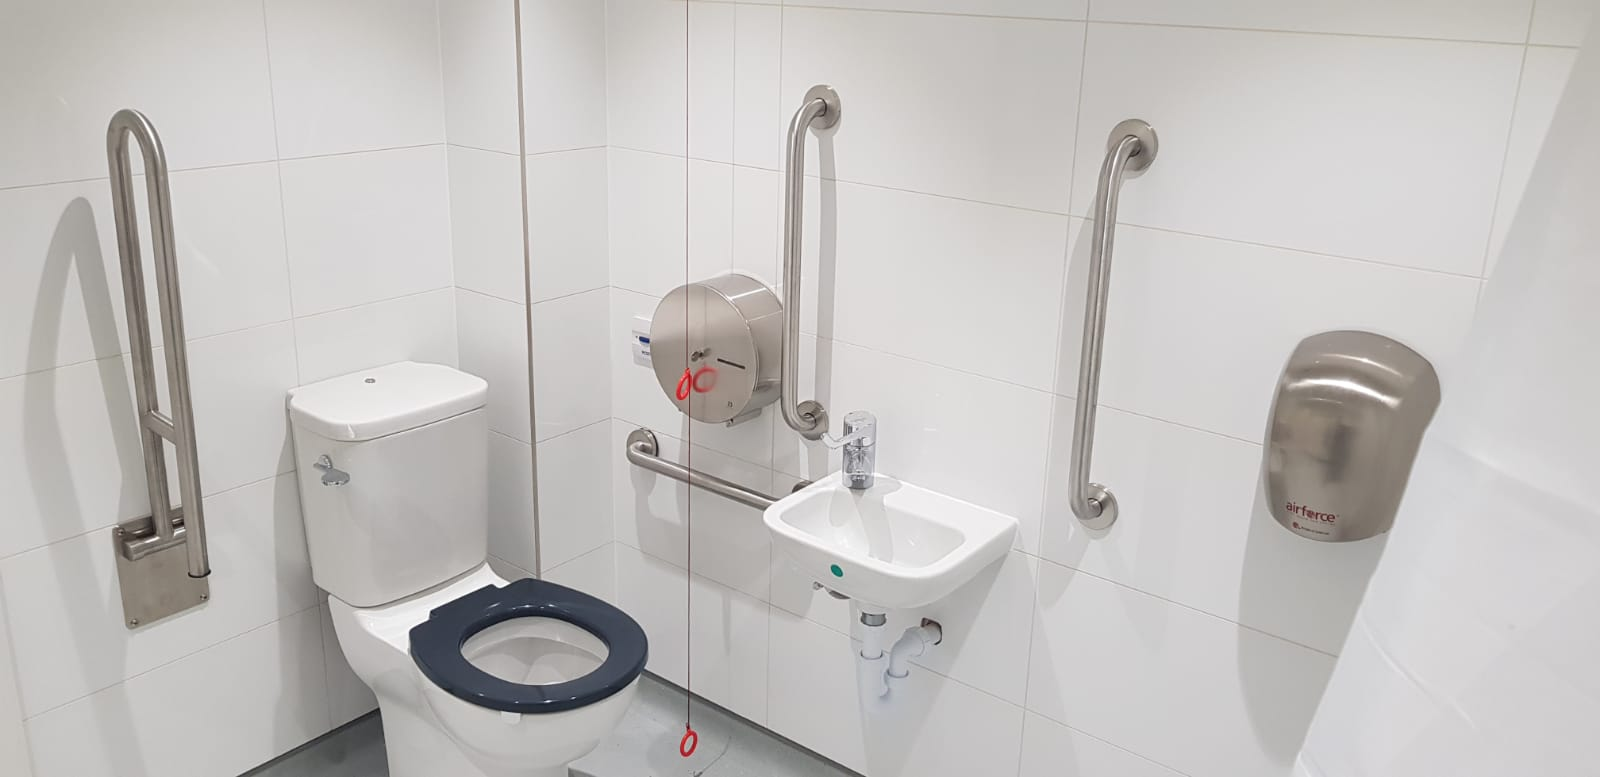 Bespoke NHS and healthcare installations from Stevens Washrooms